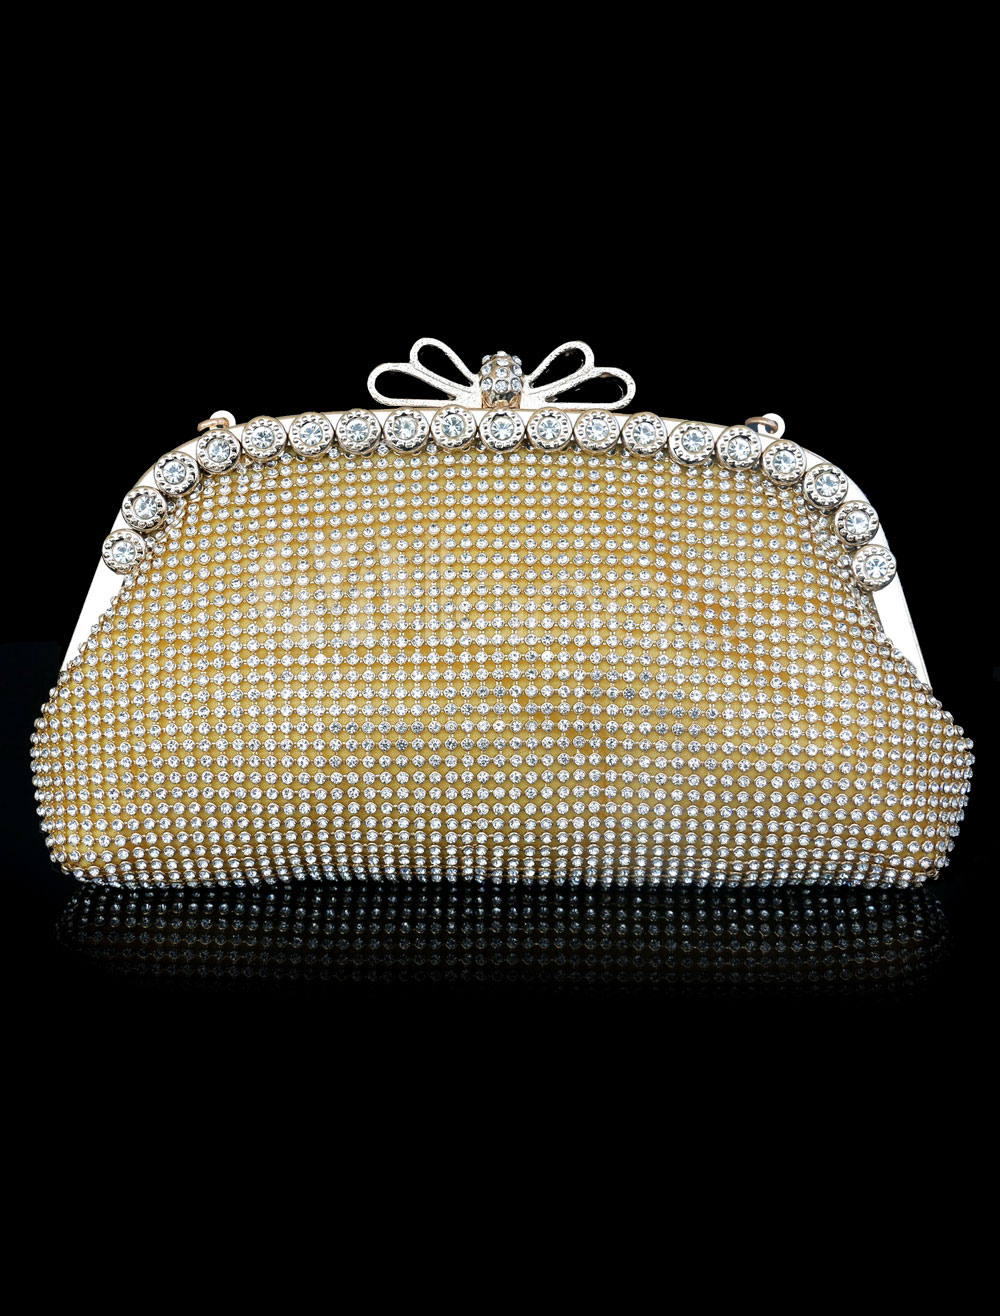 Buy Evening Clutch Bag Gold Rhinestones Beading Glitter Wedding Bridal Purse for $34.64 in Milanoo store